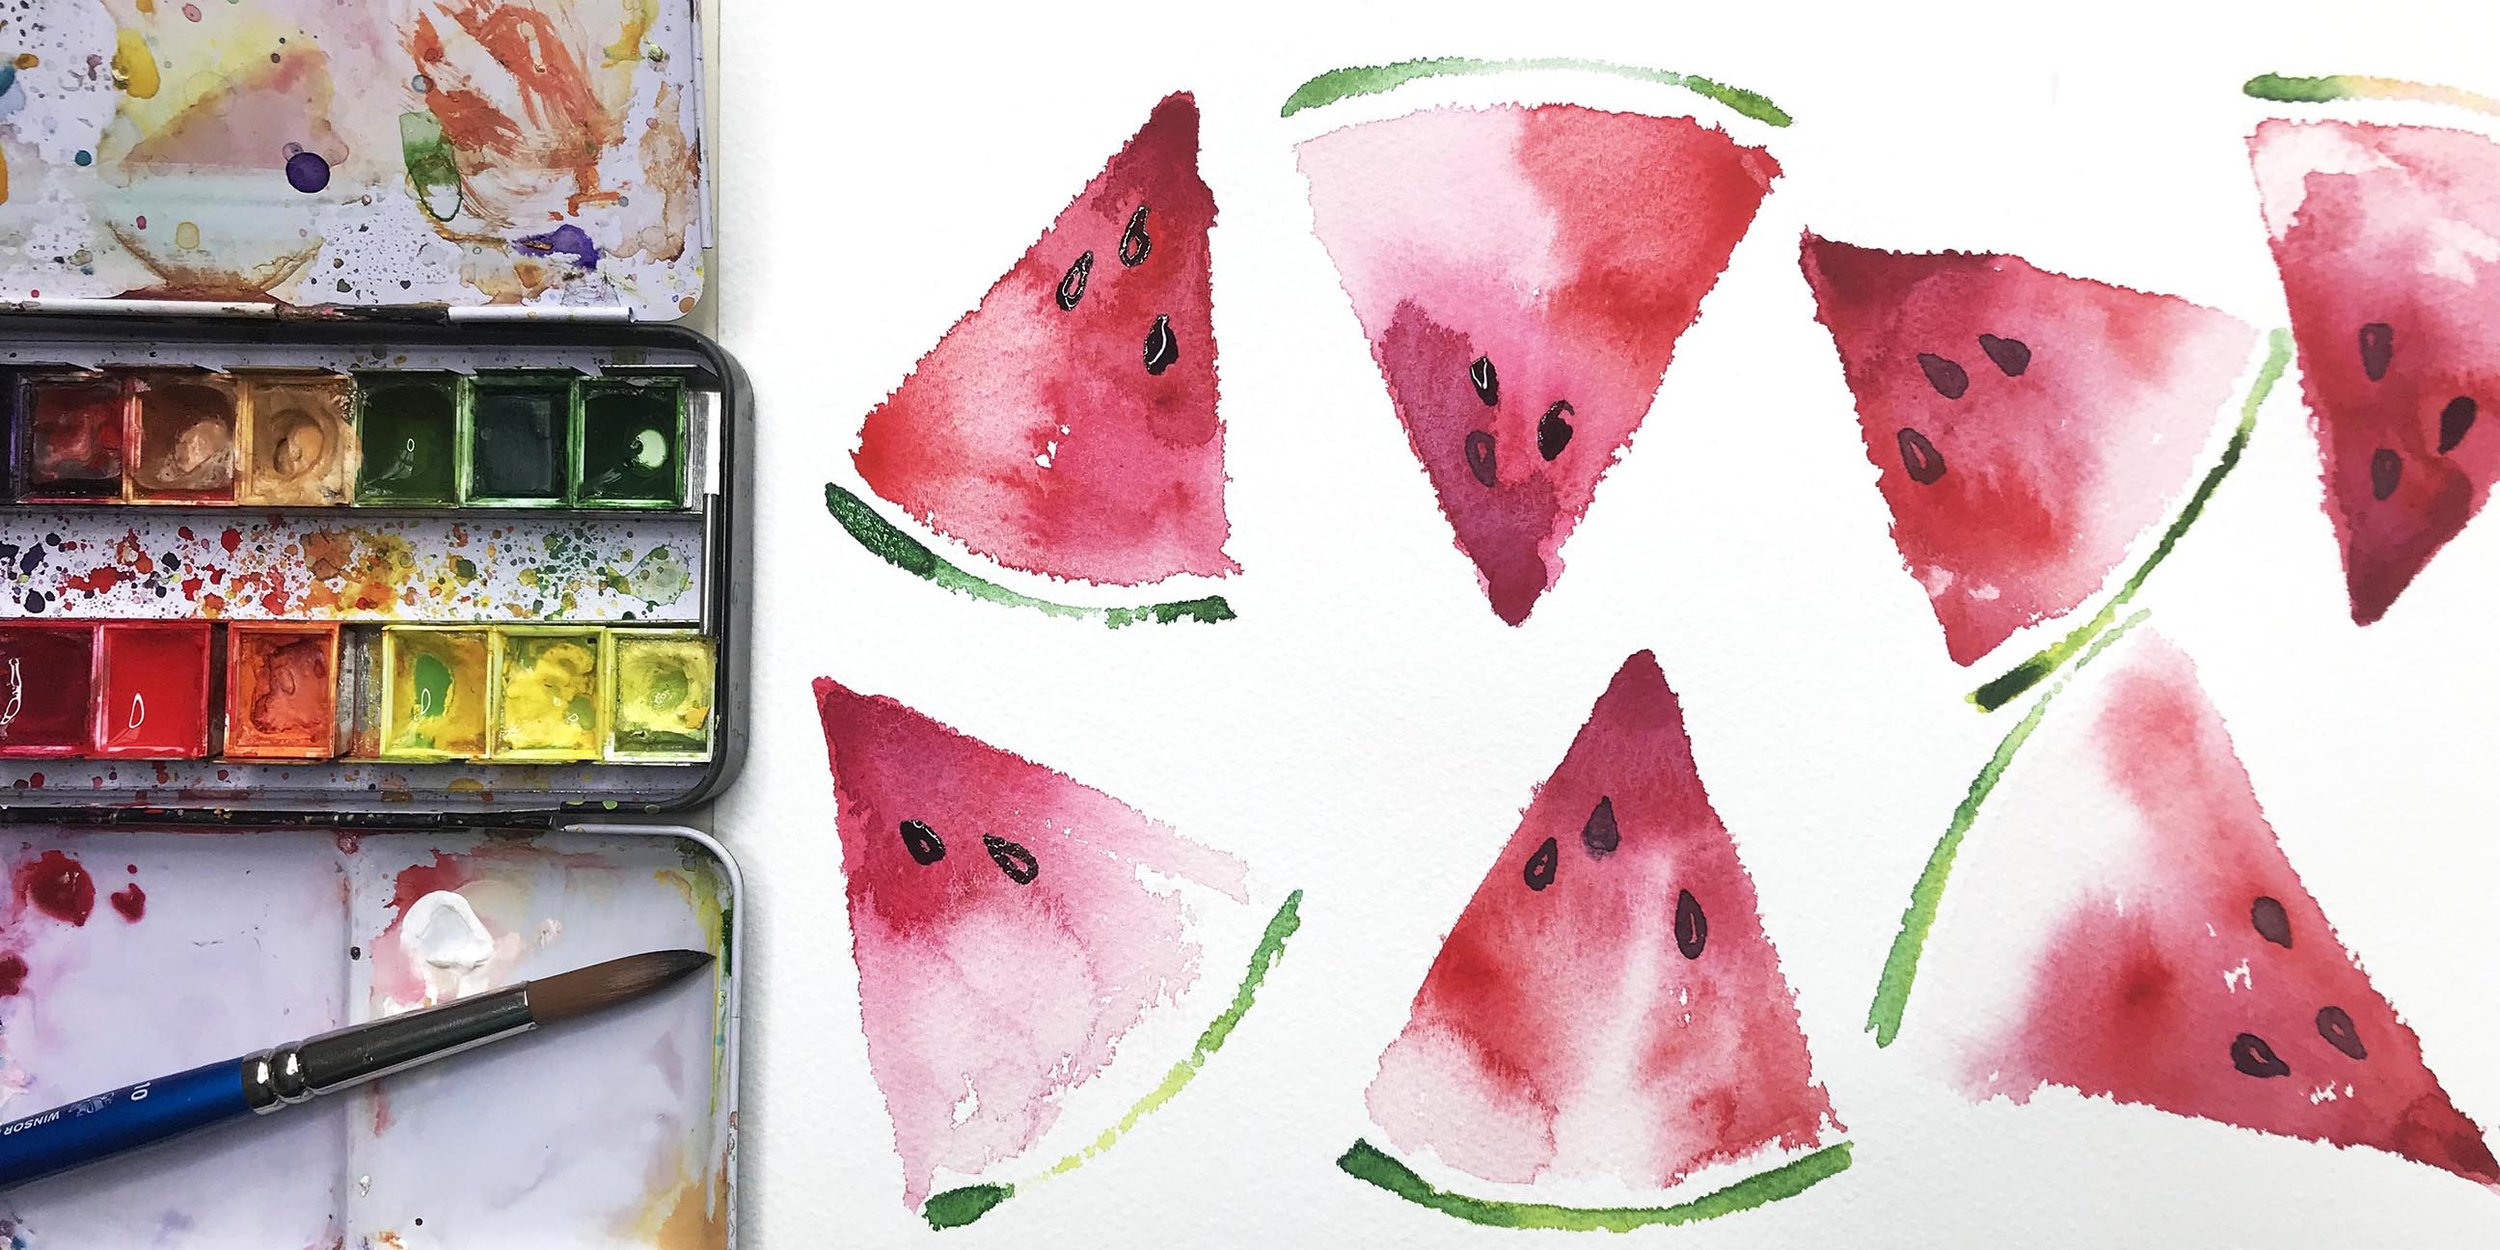 watermelon landscape 2 crop.jpg